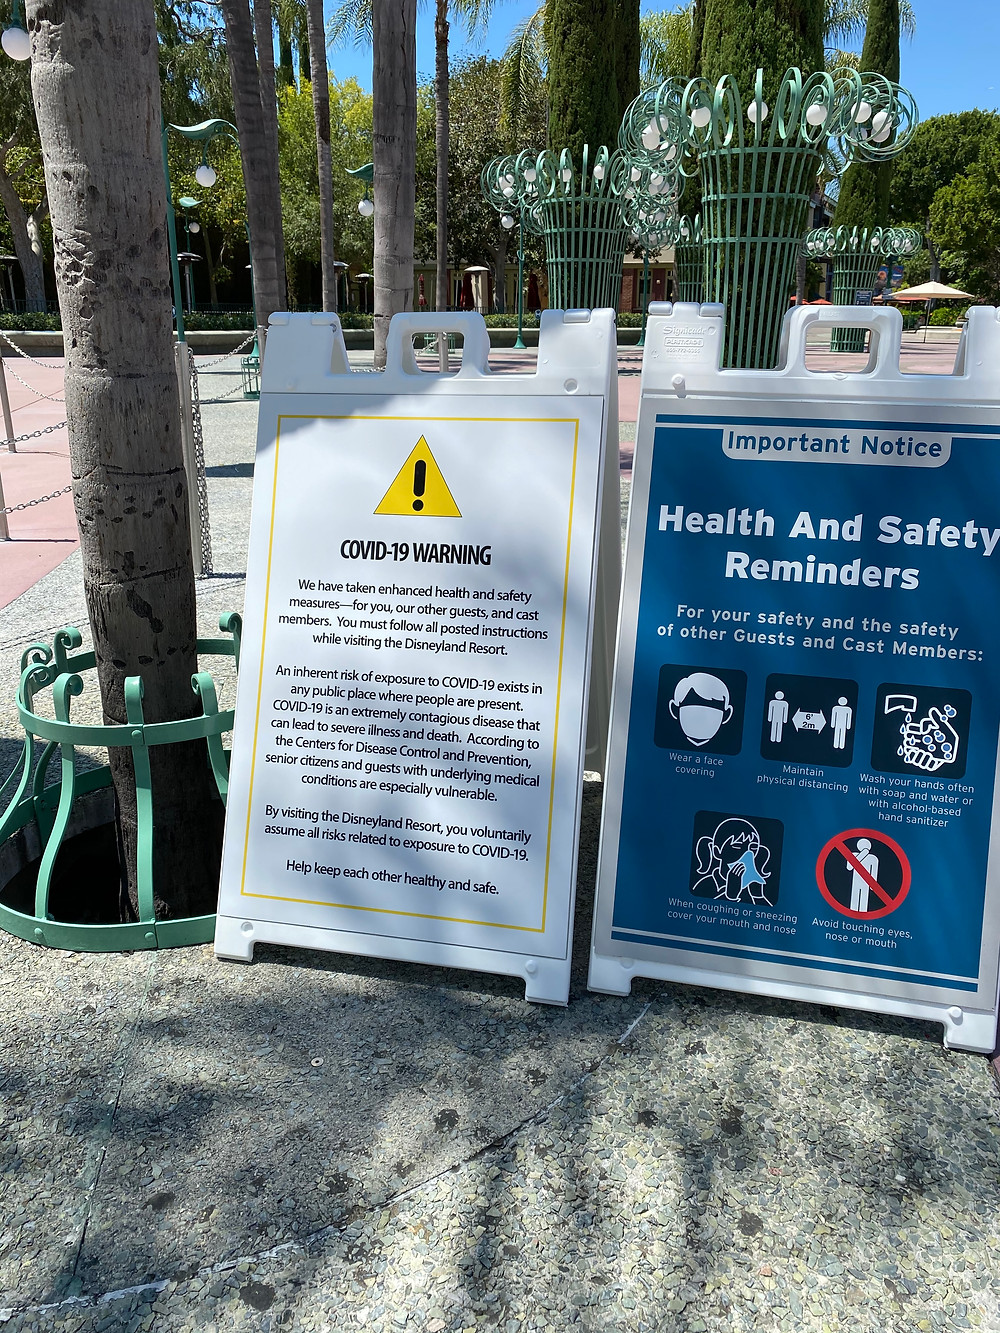 Signs with health and safety regulations for Downtown Disney and COVID warning